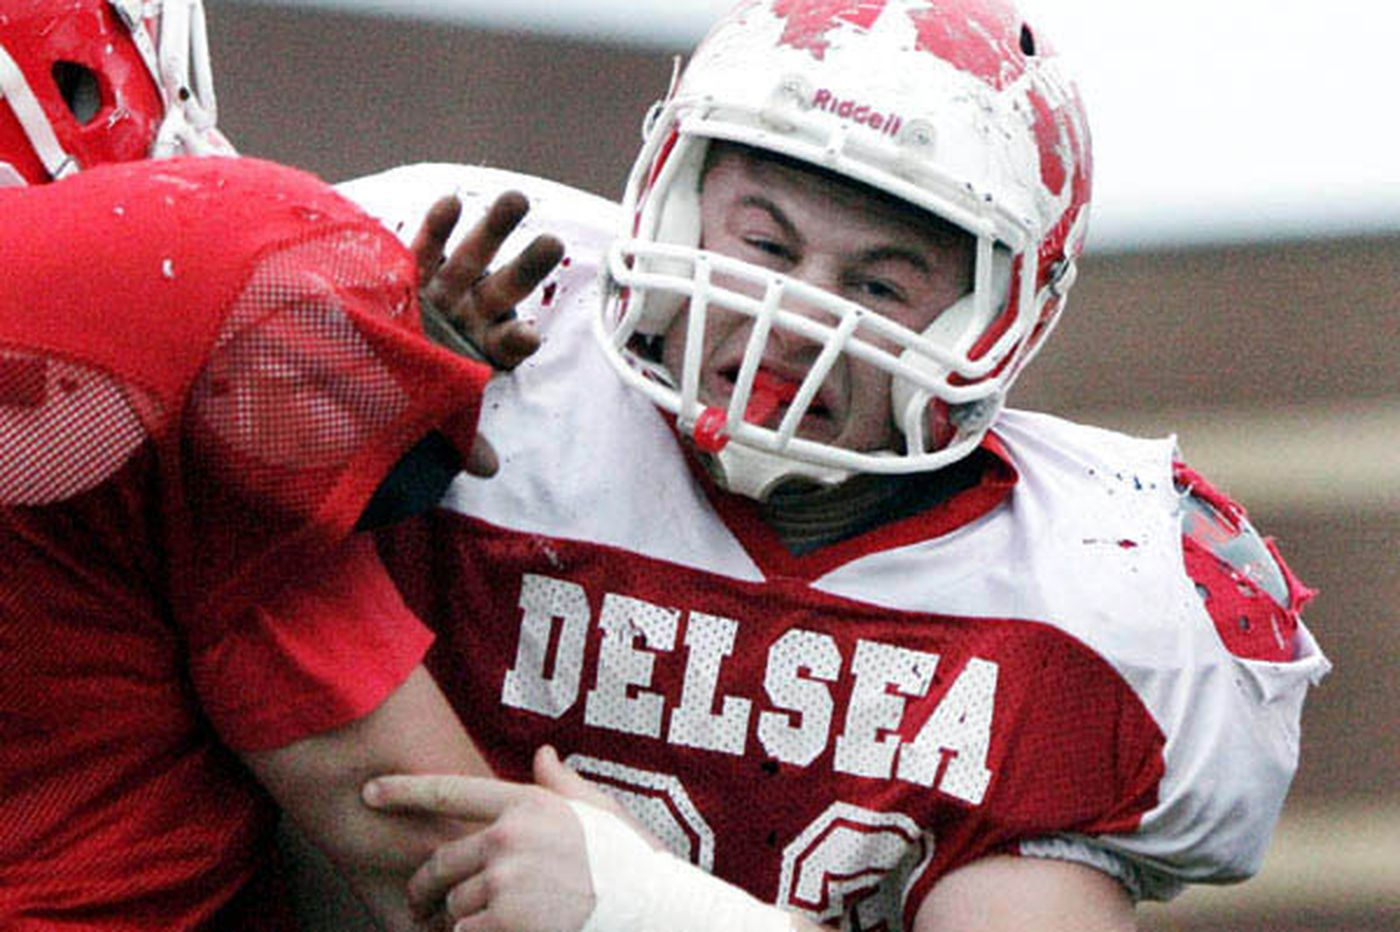 Weight-room work pays off for Delsea's Brovero